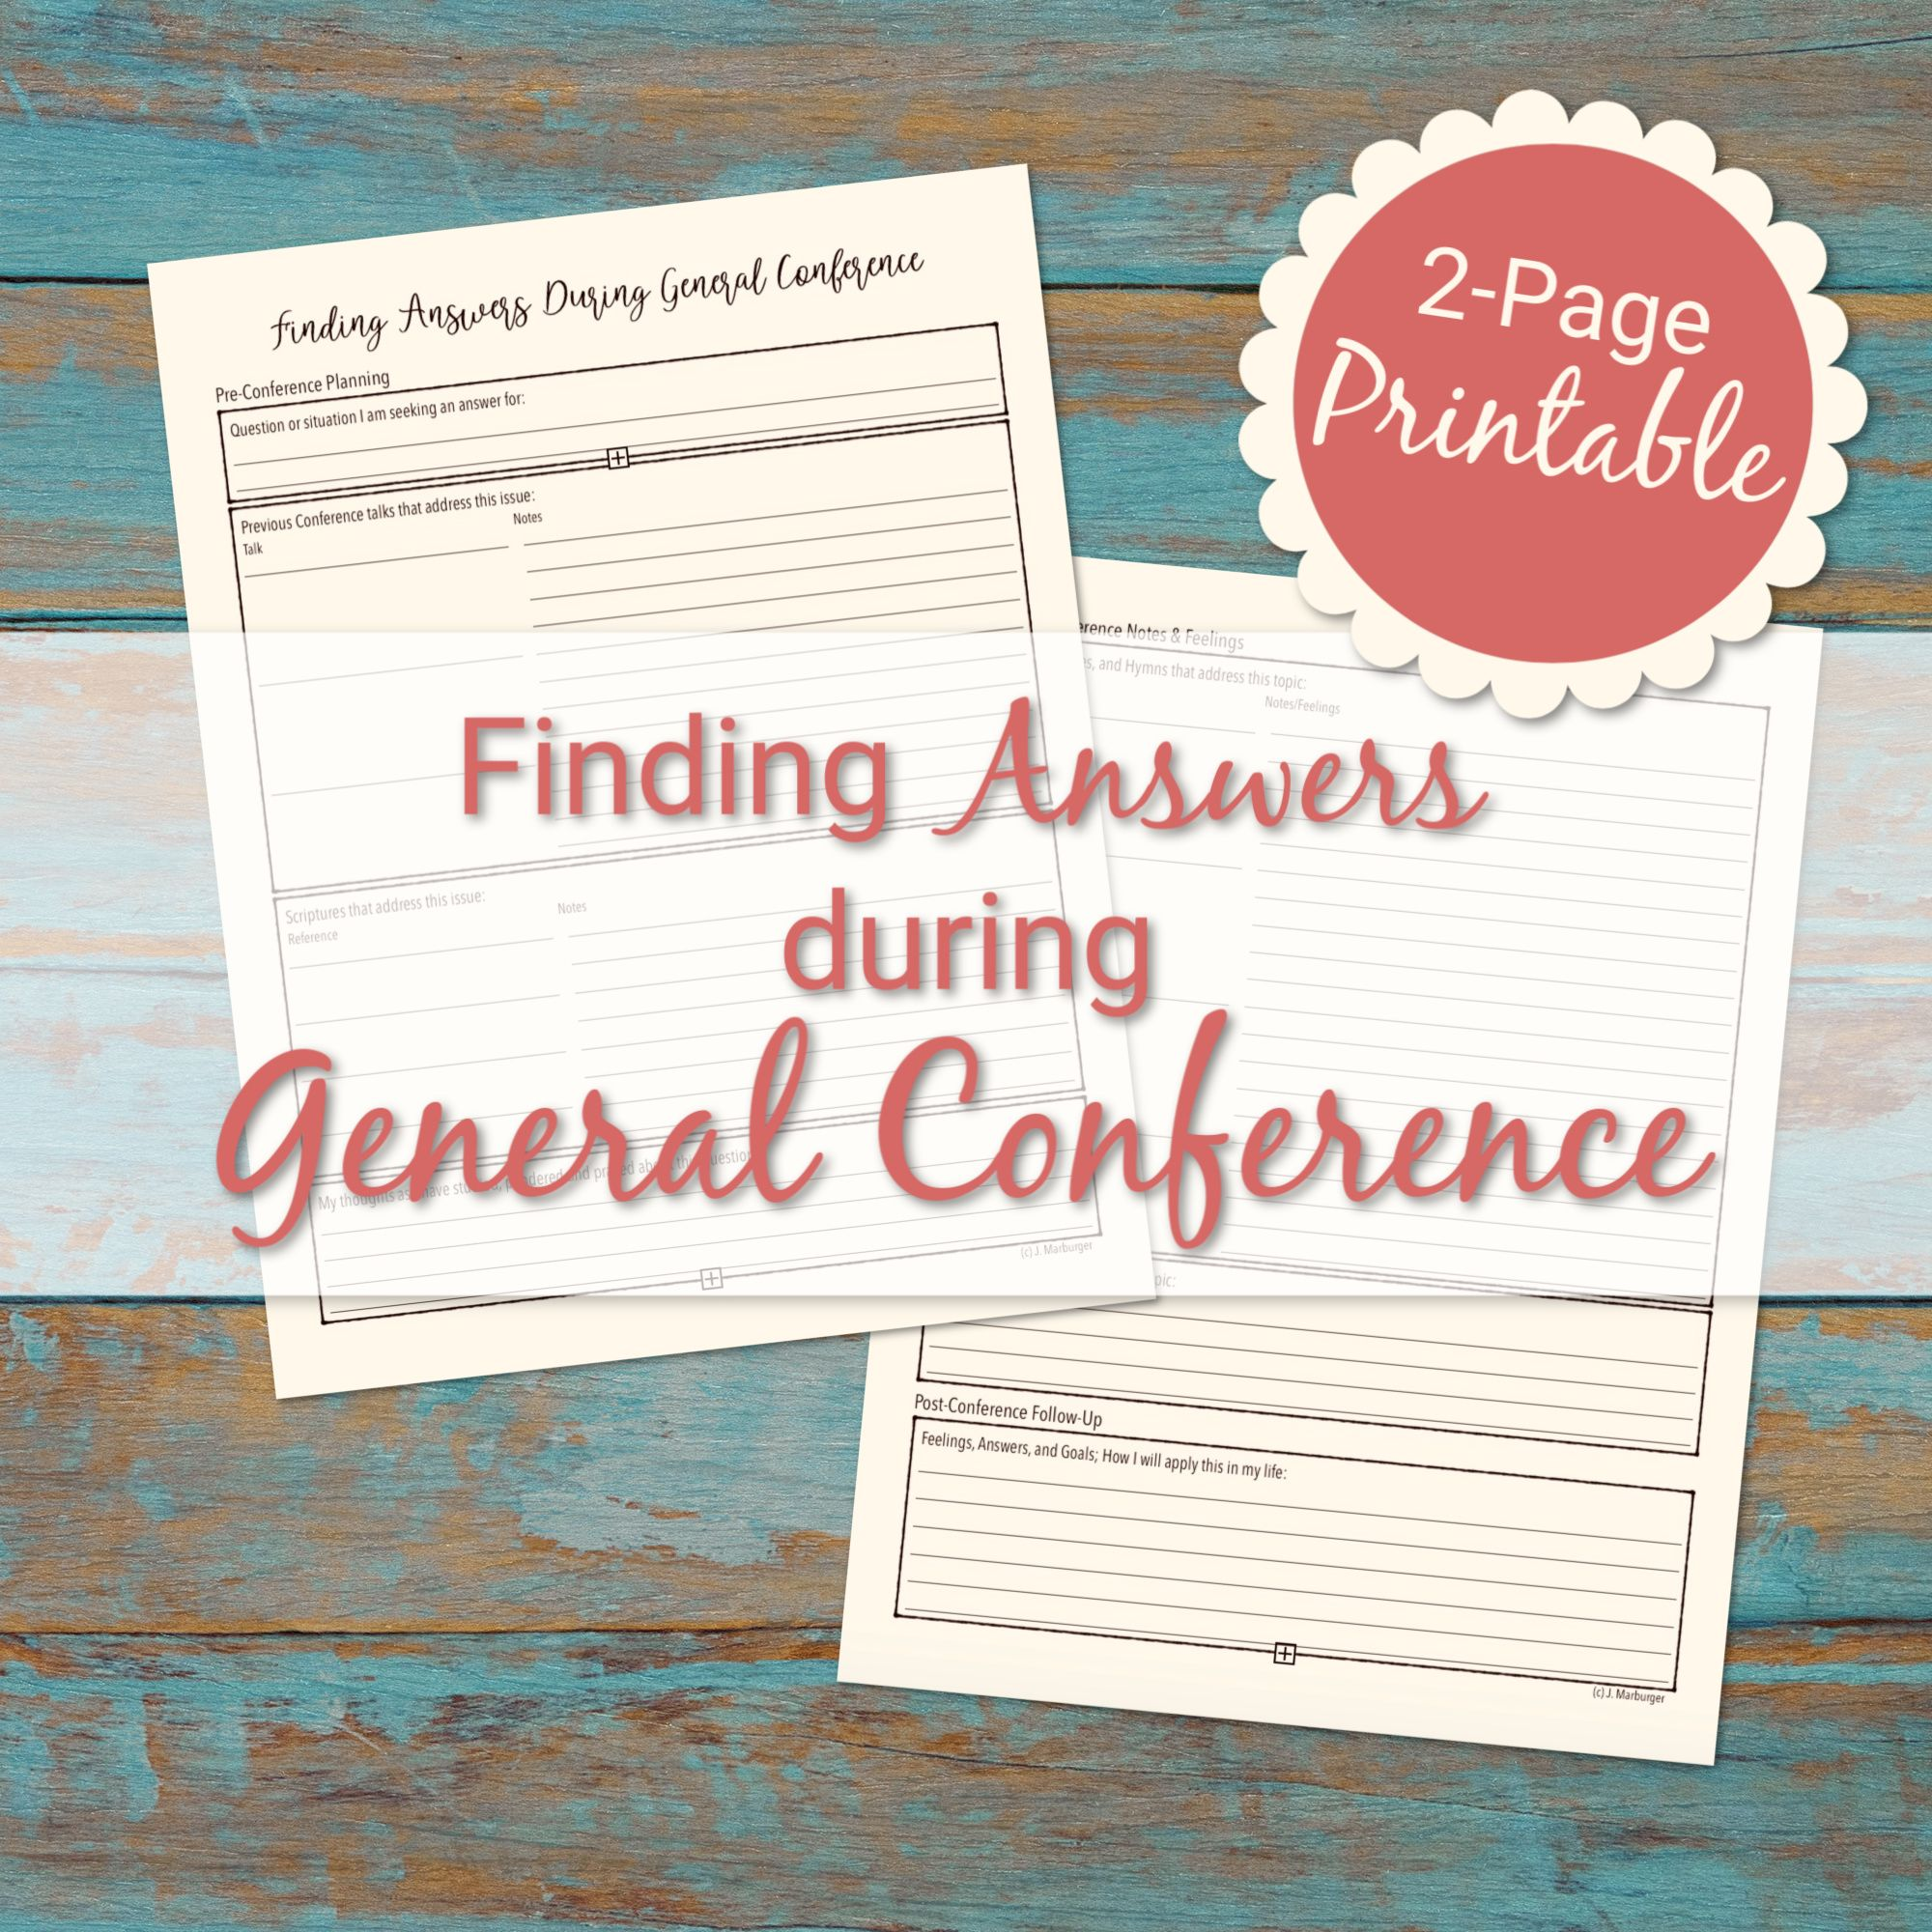 This Printable Guides You Through Seeking Answers During